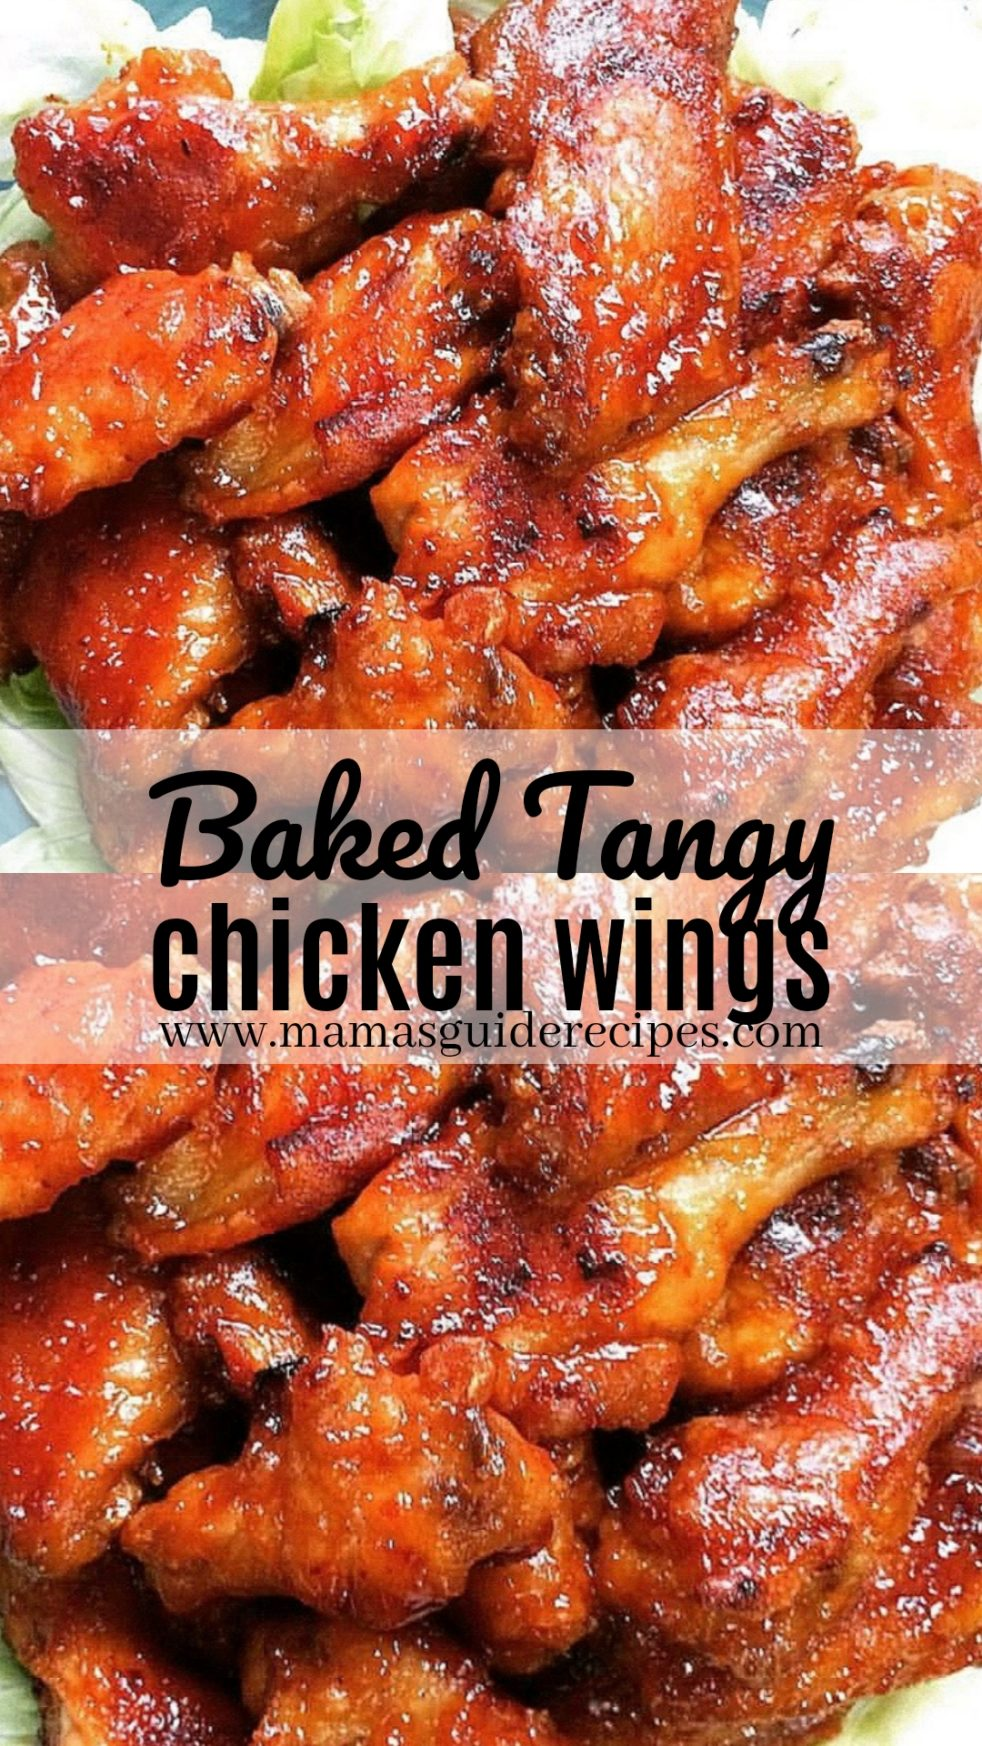 Baked Tangy Chicken Wings